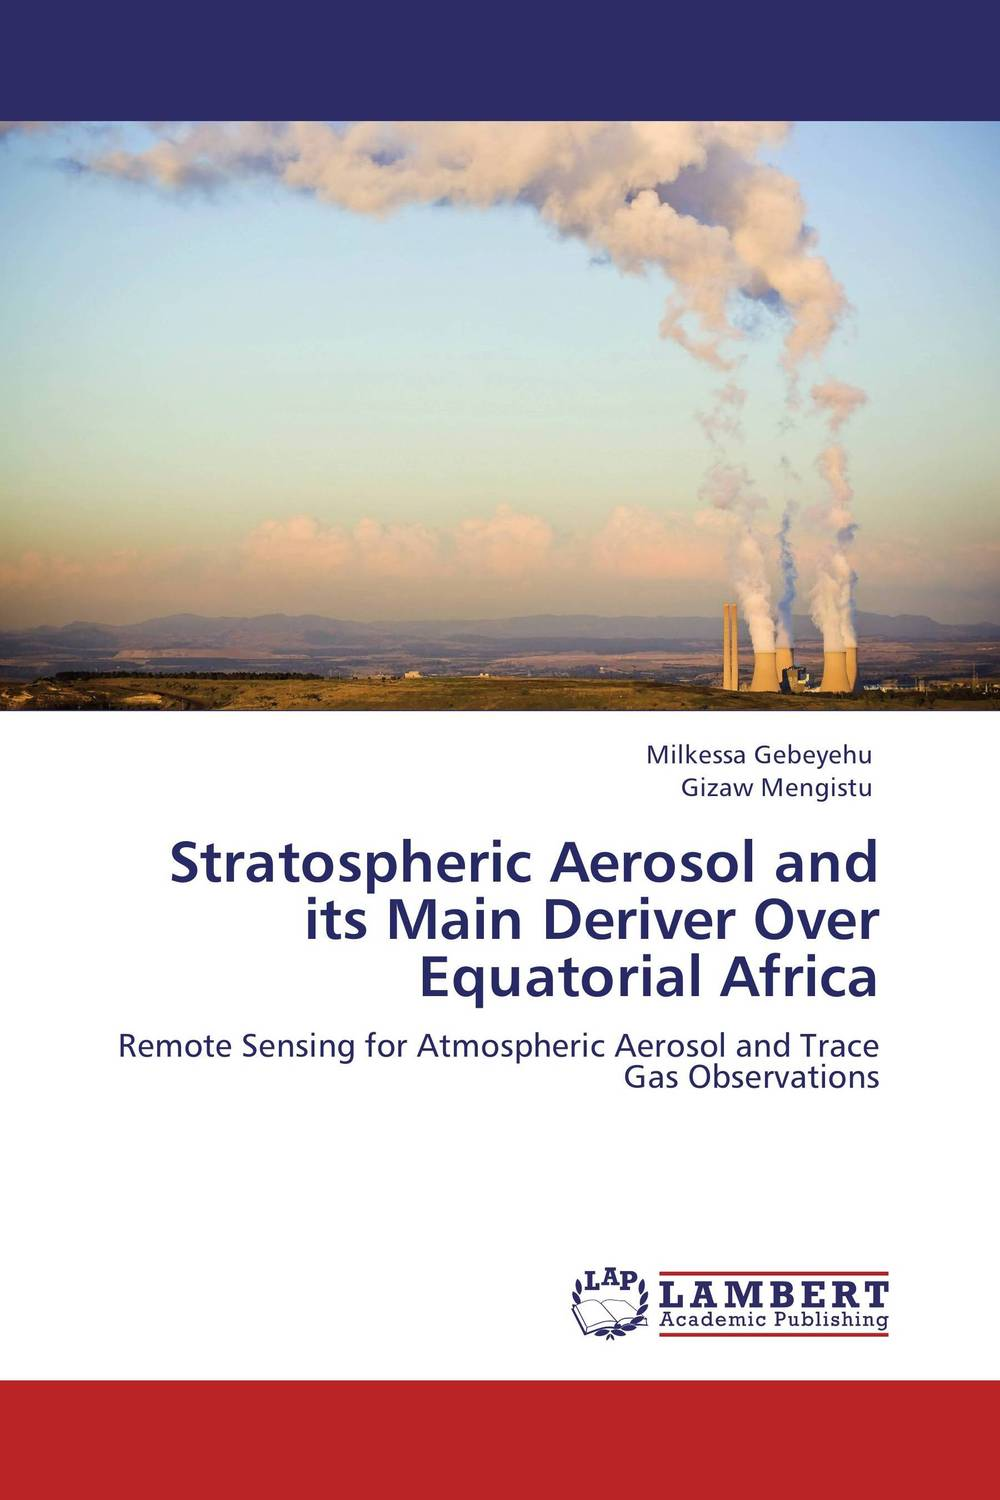 Stratospheric Aerosol and its Main Deriver Over Equatorial Africa matters of life